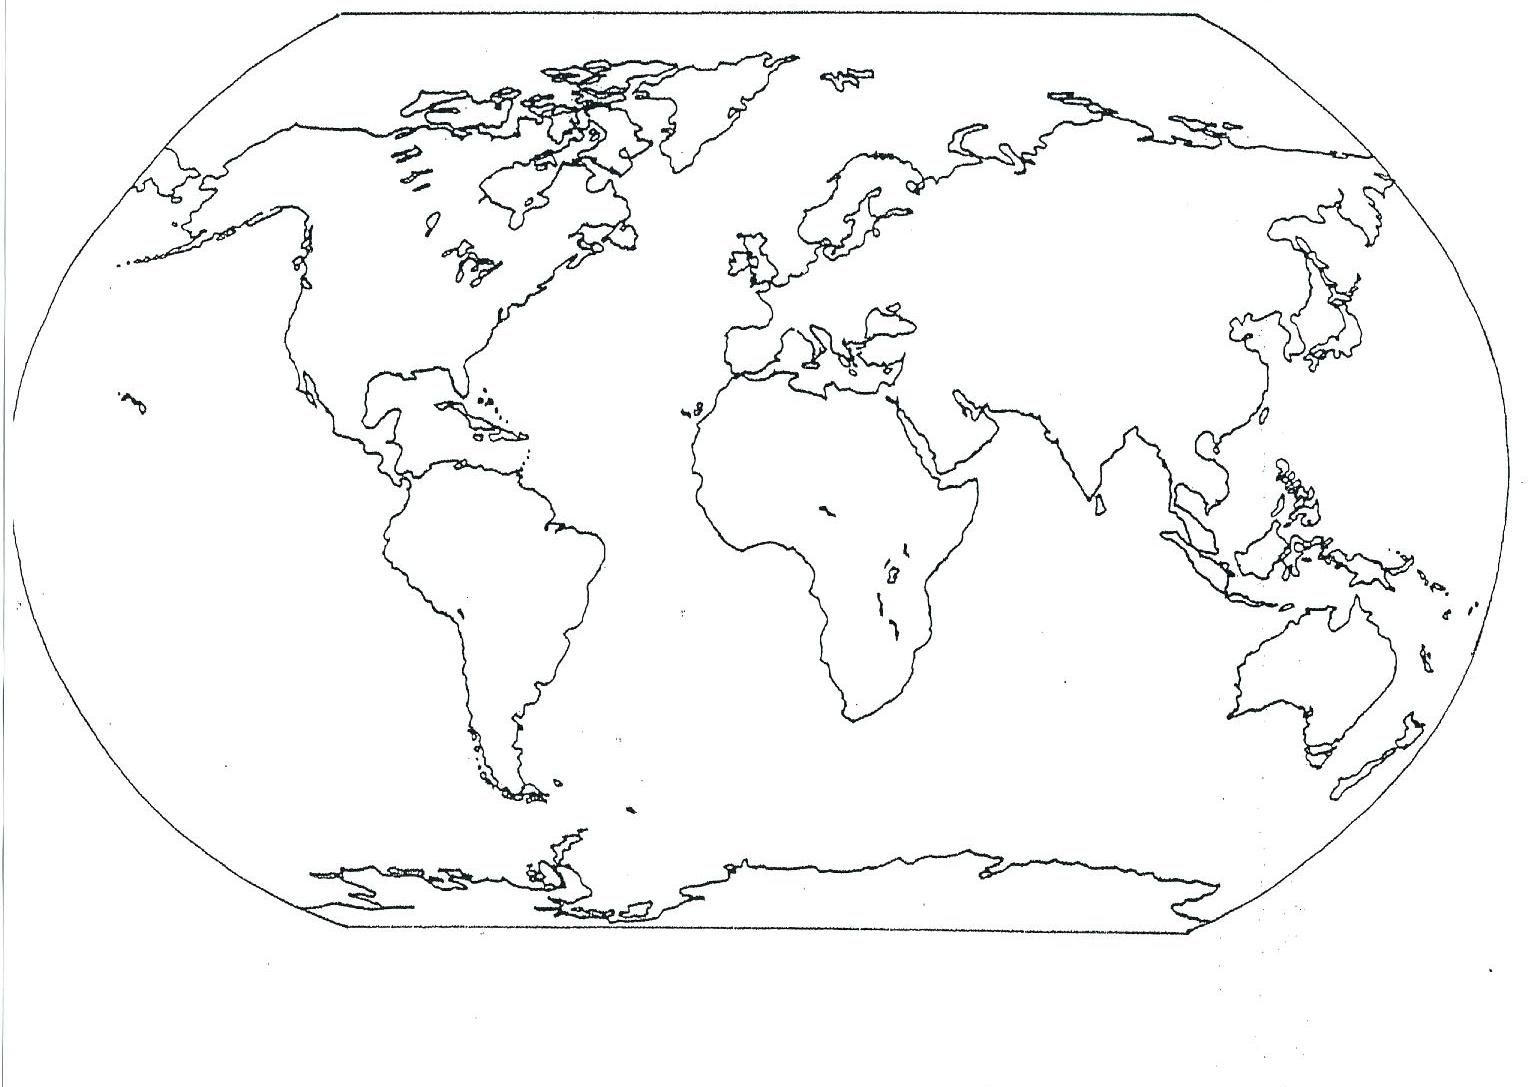 7 Continents World Map In